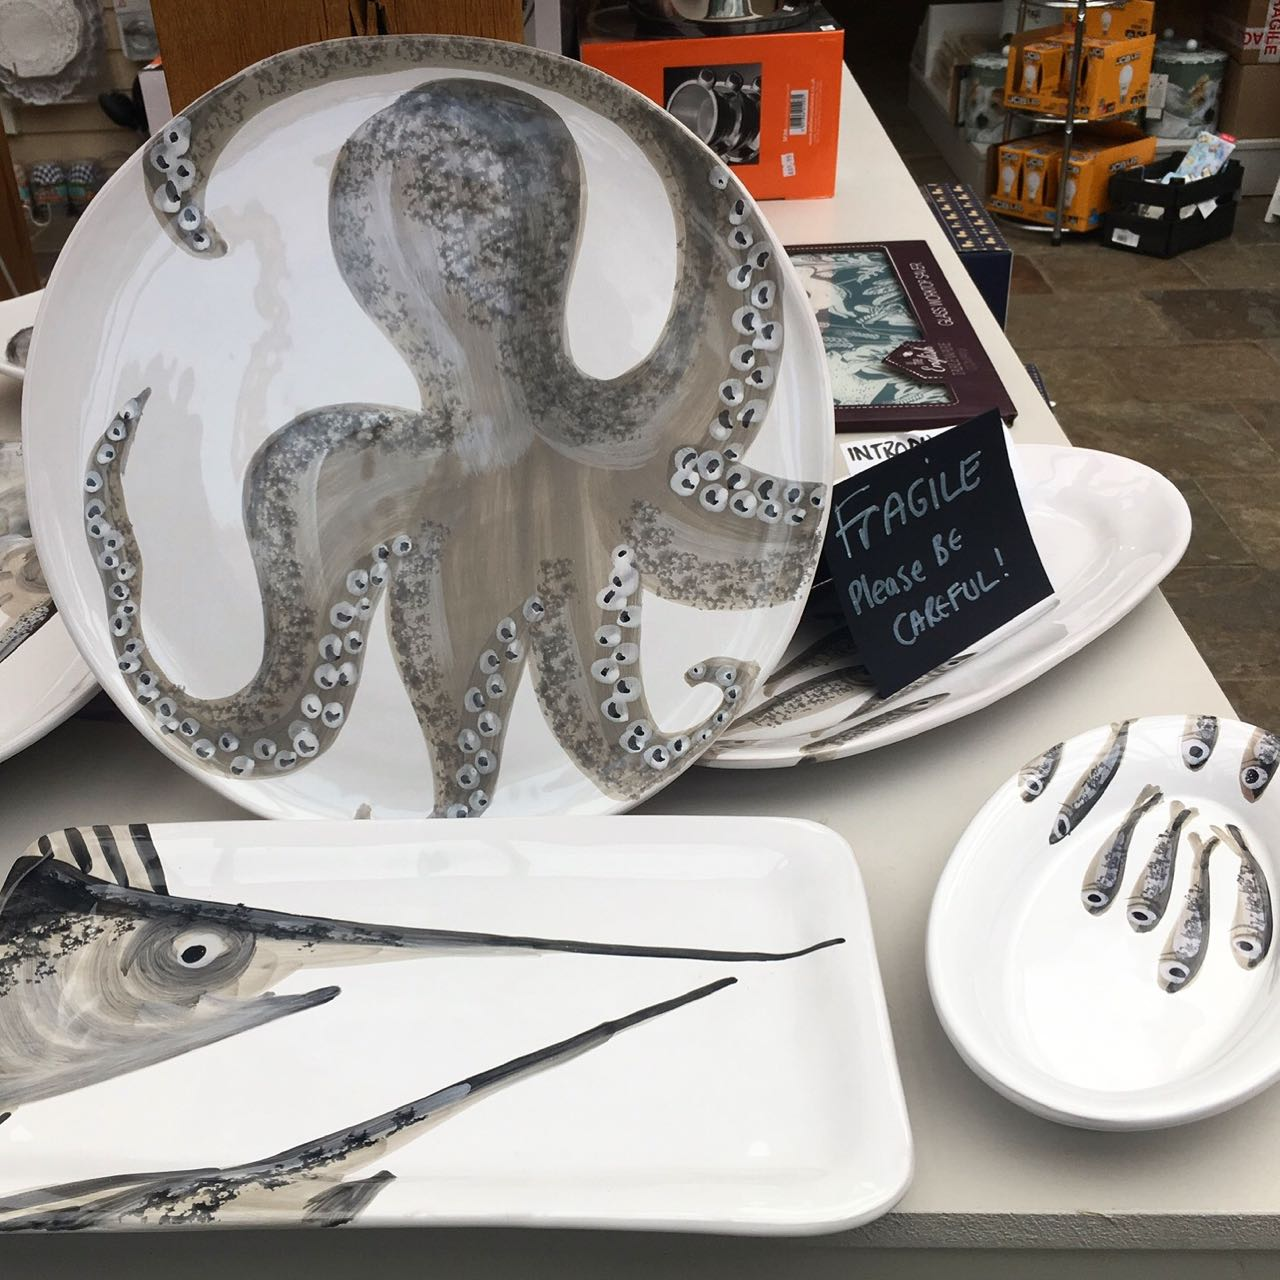 More of the fish plates - including the octopus one - at Uttings